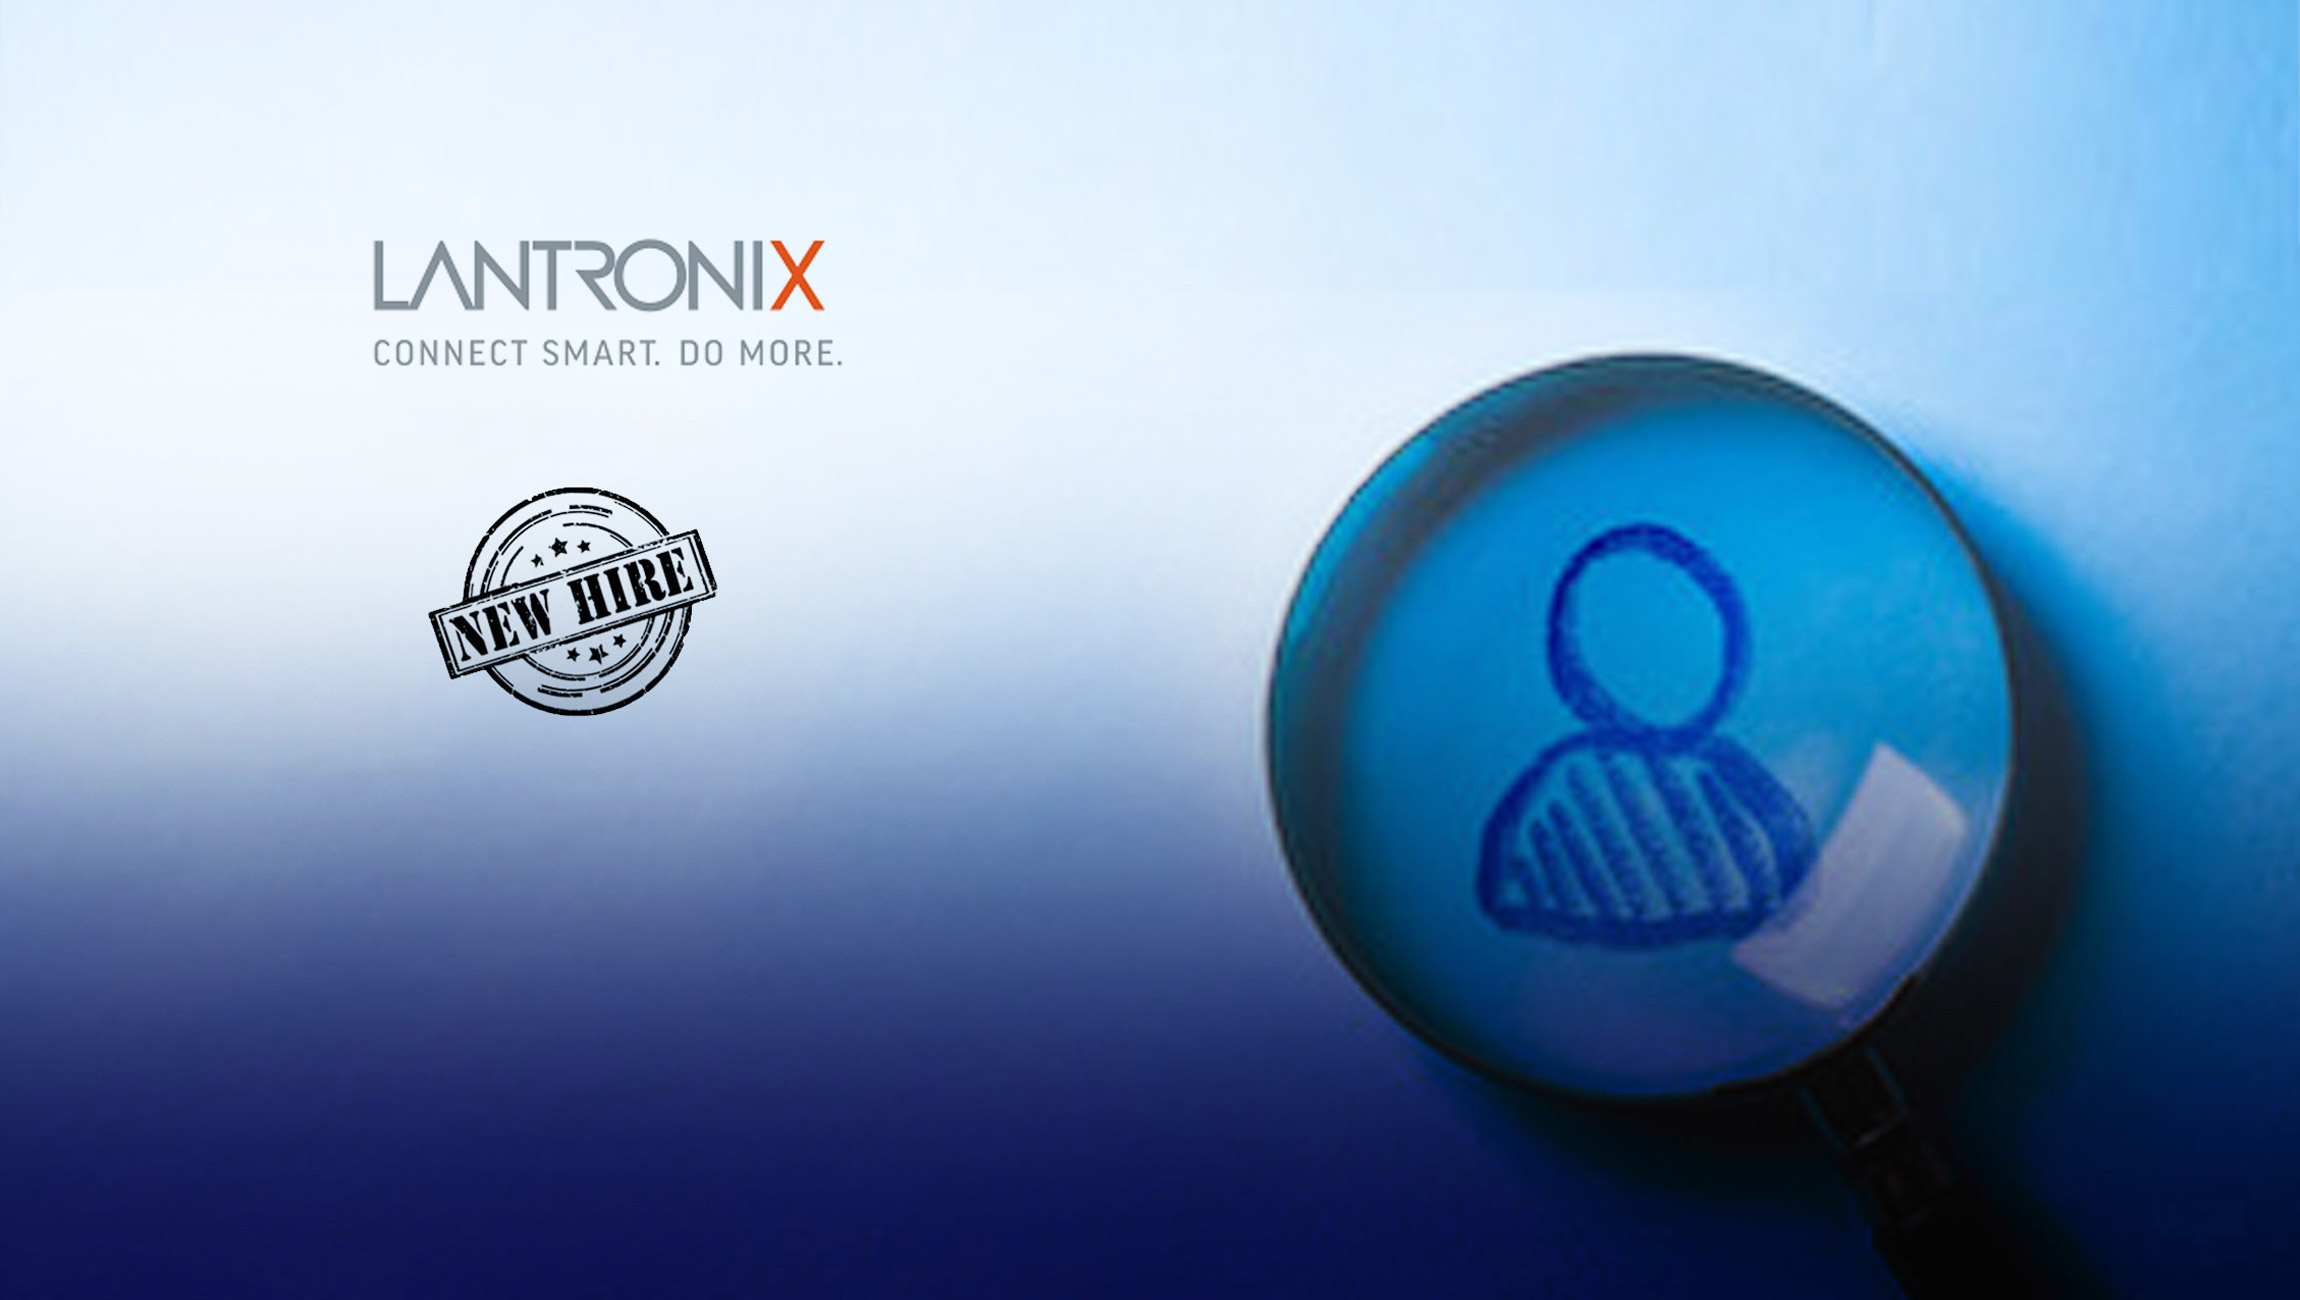 Lantronix Announces Creation of Advisory Board with Bernhard Bruscha as First Member and Chair